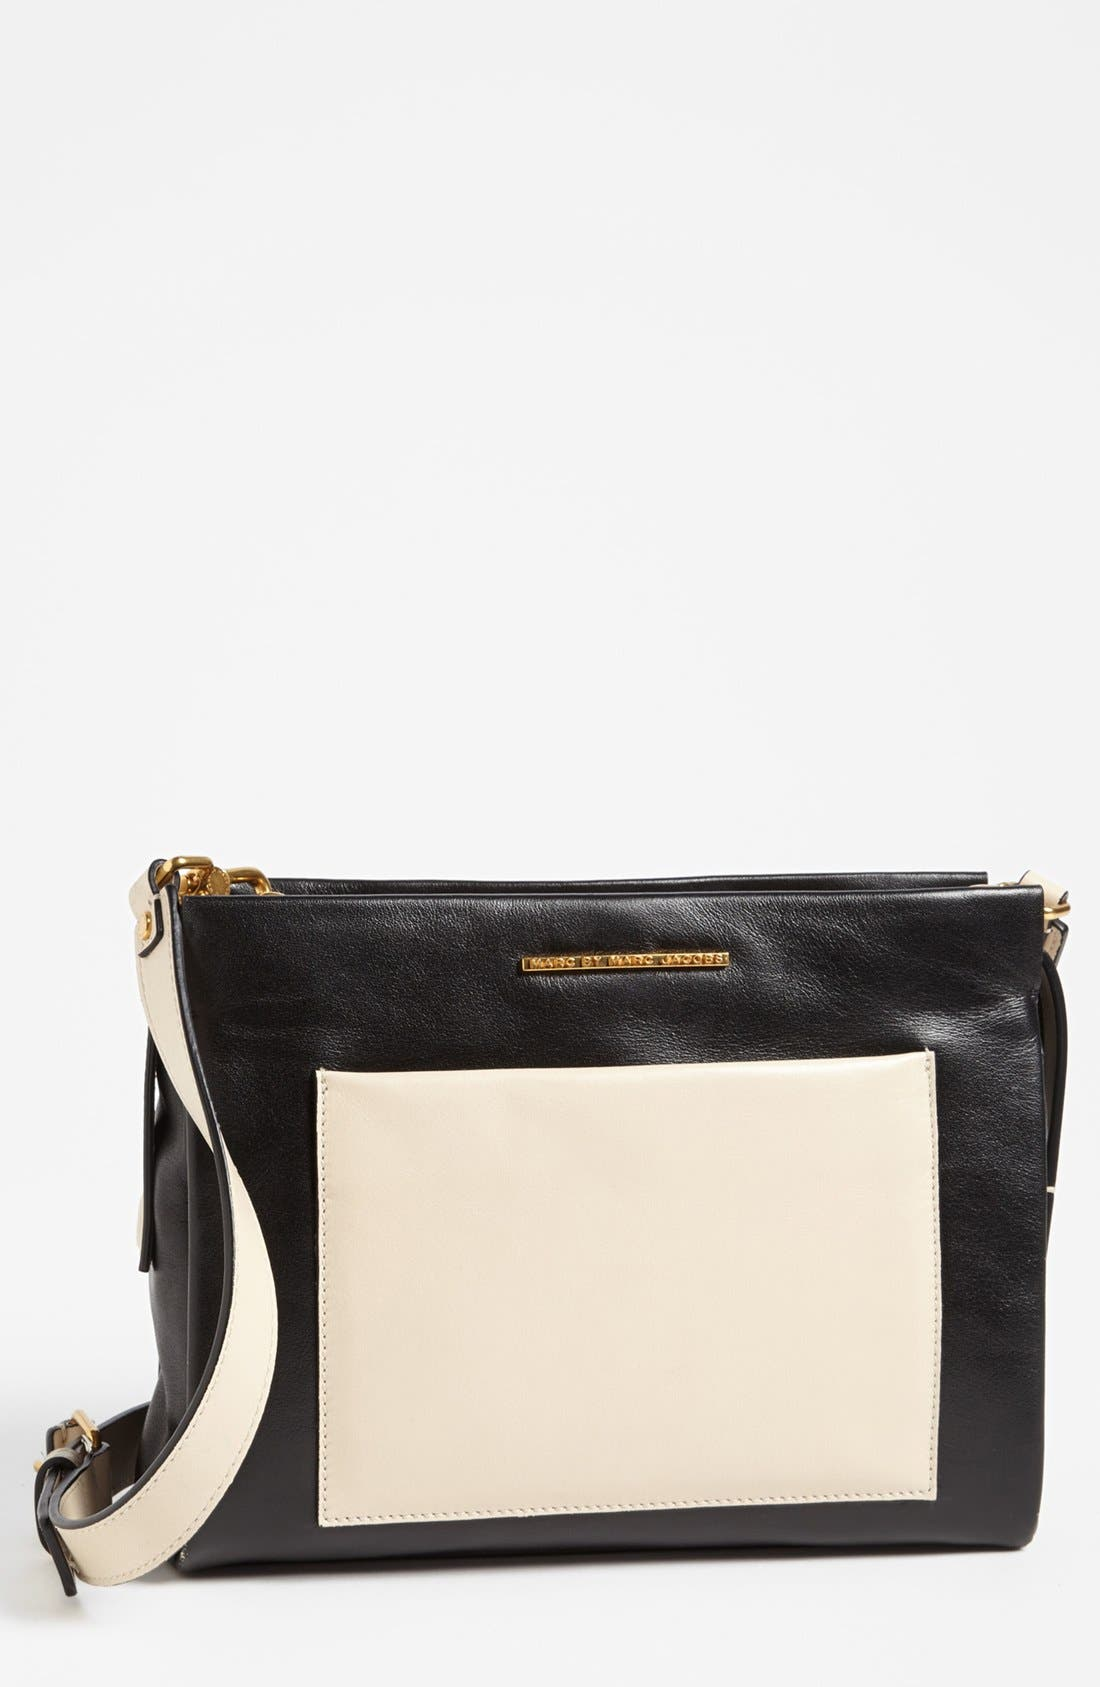 Main Image - MARC BY MARC JACOBS 'Fold Them' Leather Crossbody Bag